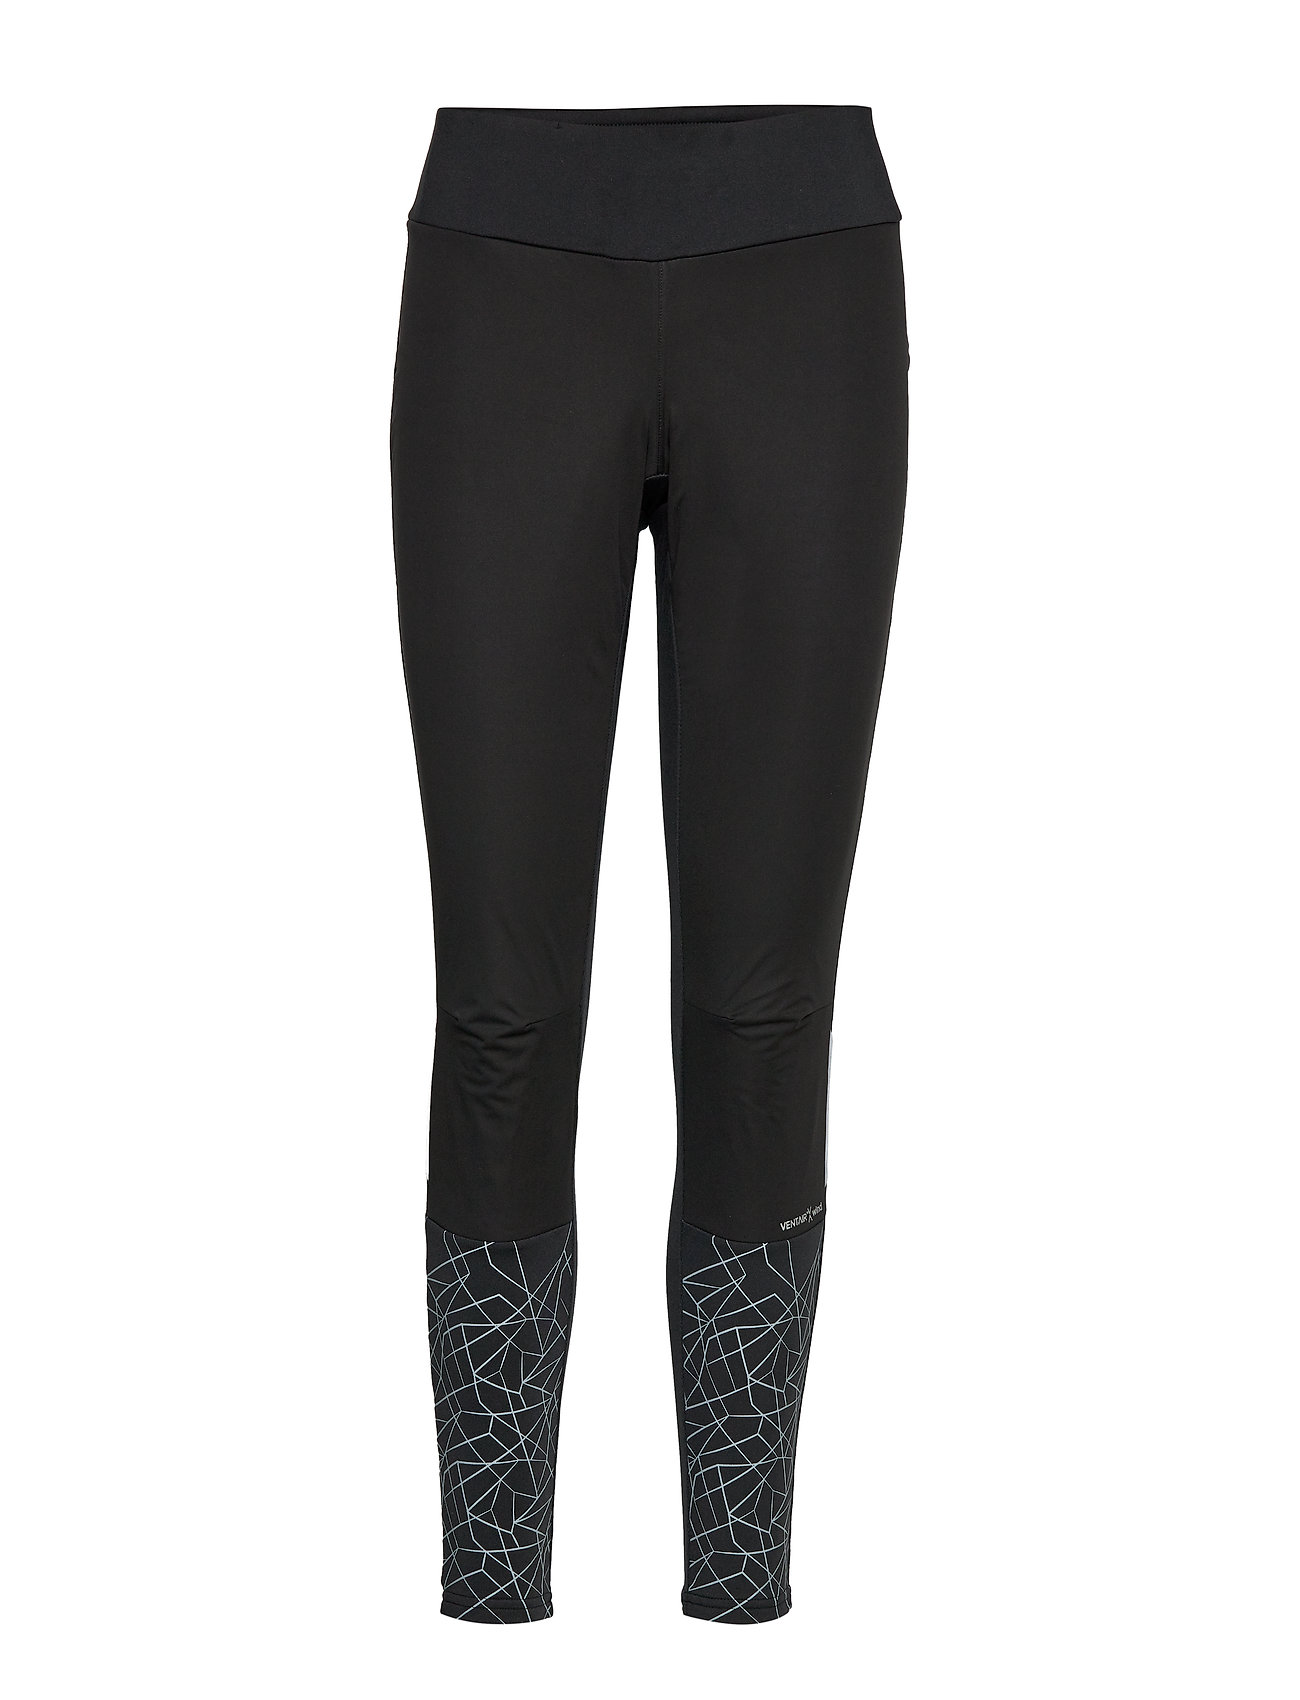 Craft WARM TRAIN WIND TIGHTS W - BLACK/ASPHALT